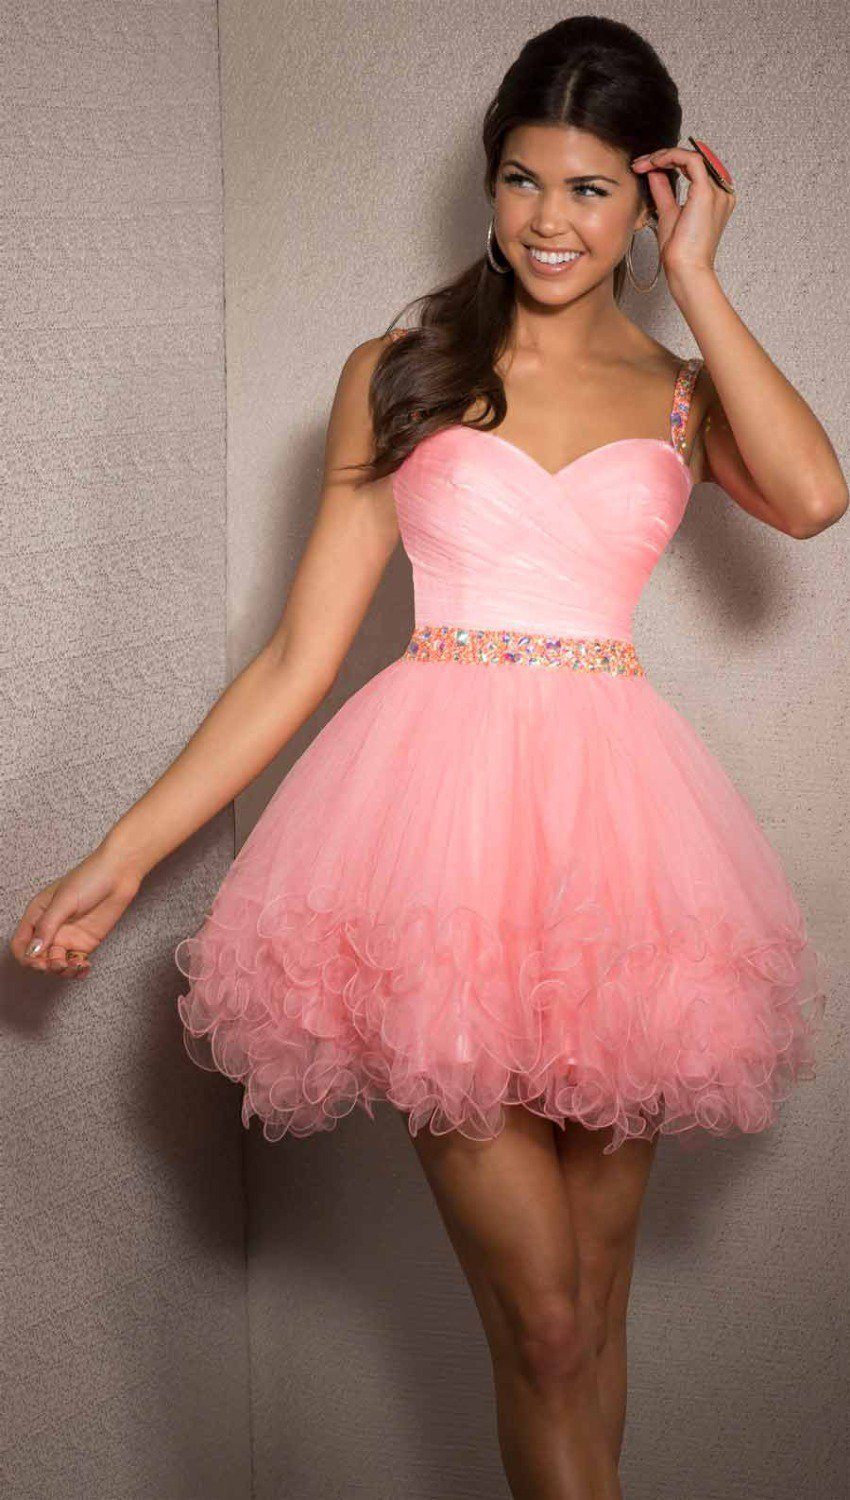 New Evening Dress Crystal Beaded Pink Tulle Backless A-Line custom Size Short evening Dresses